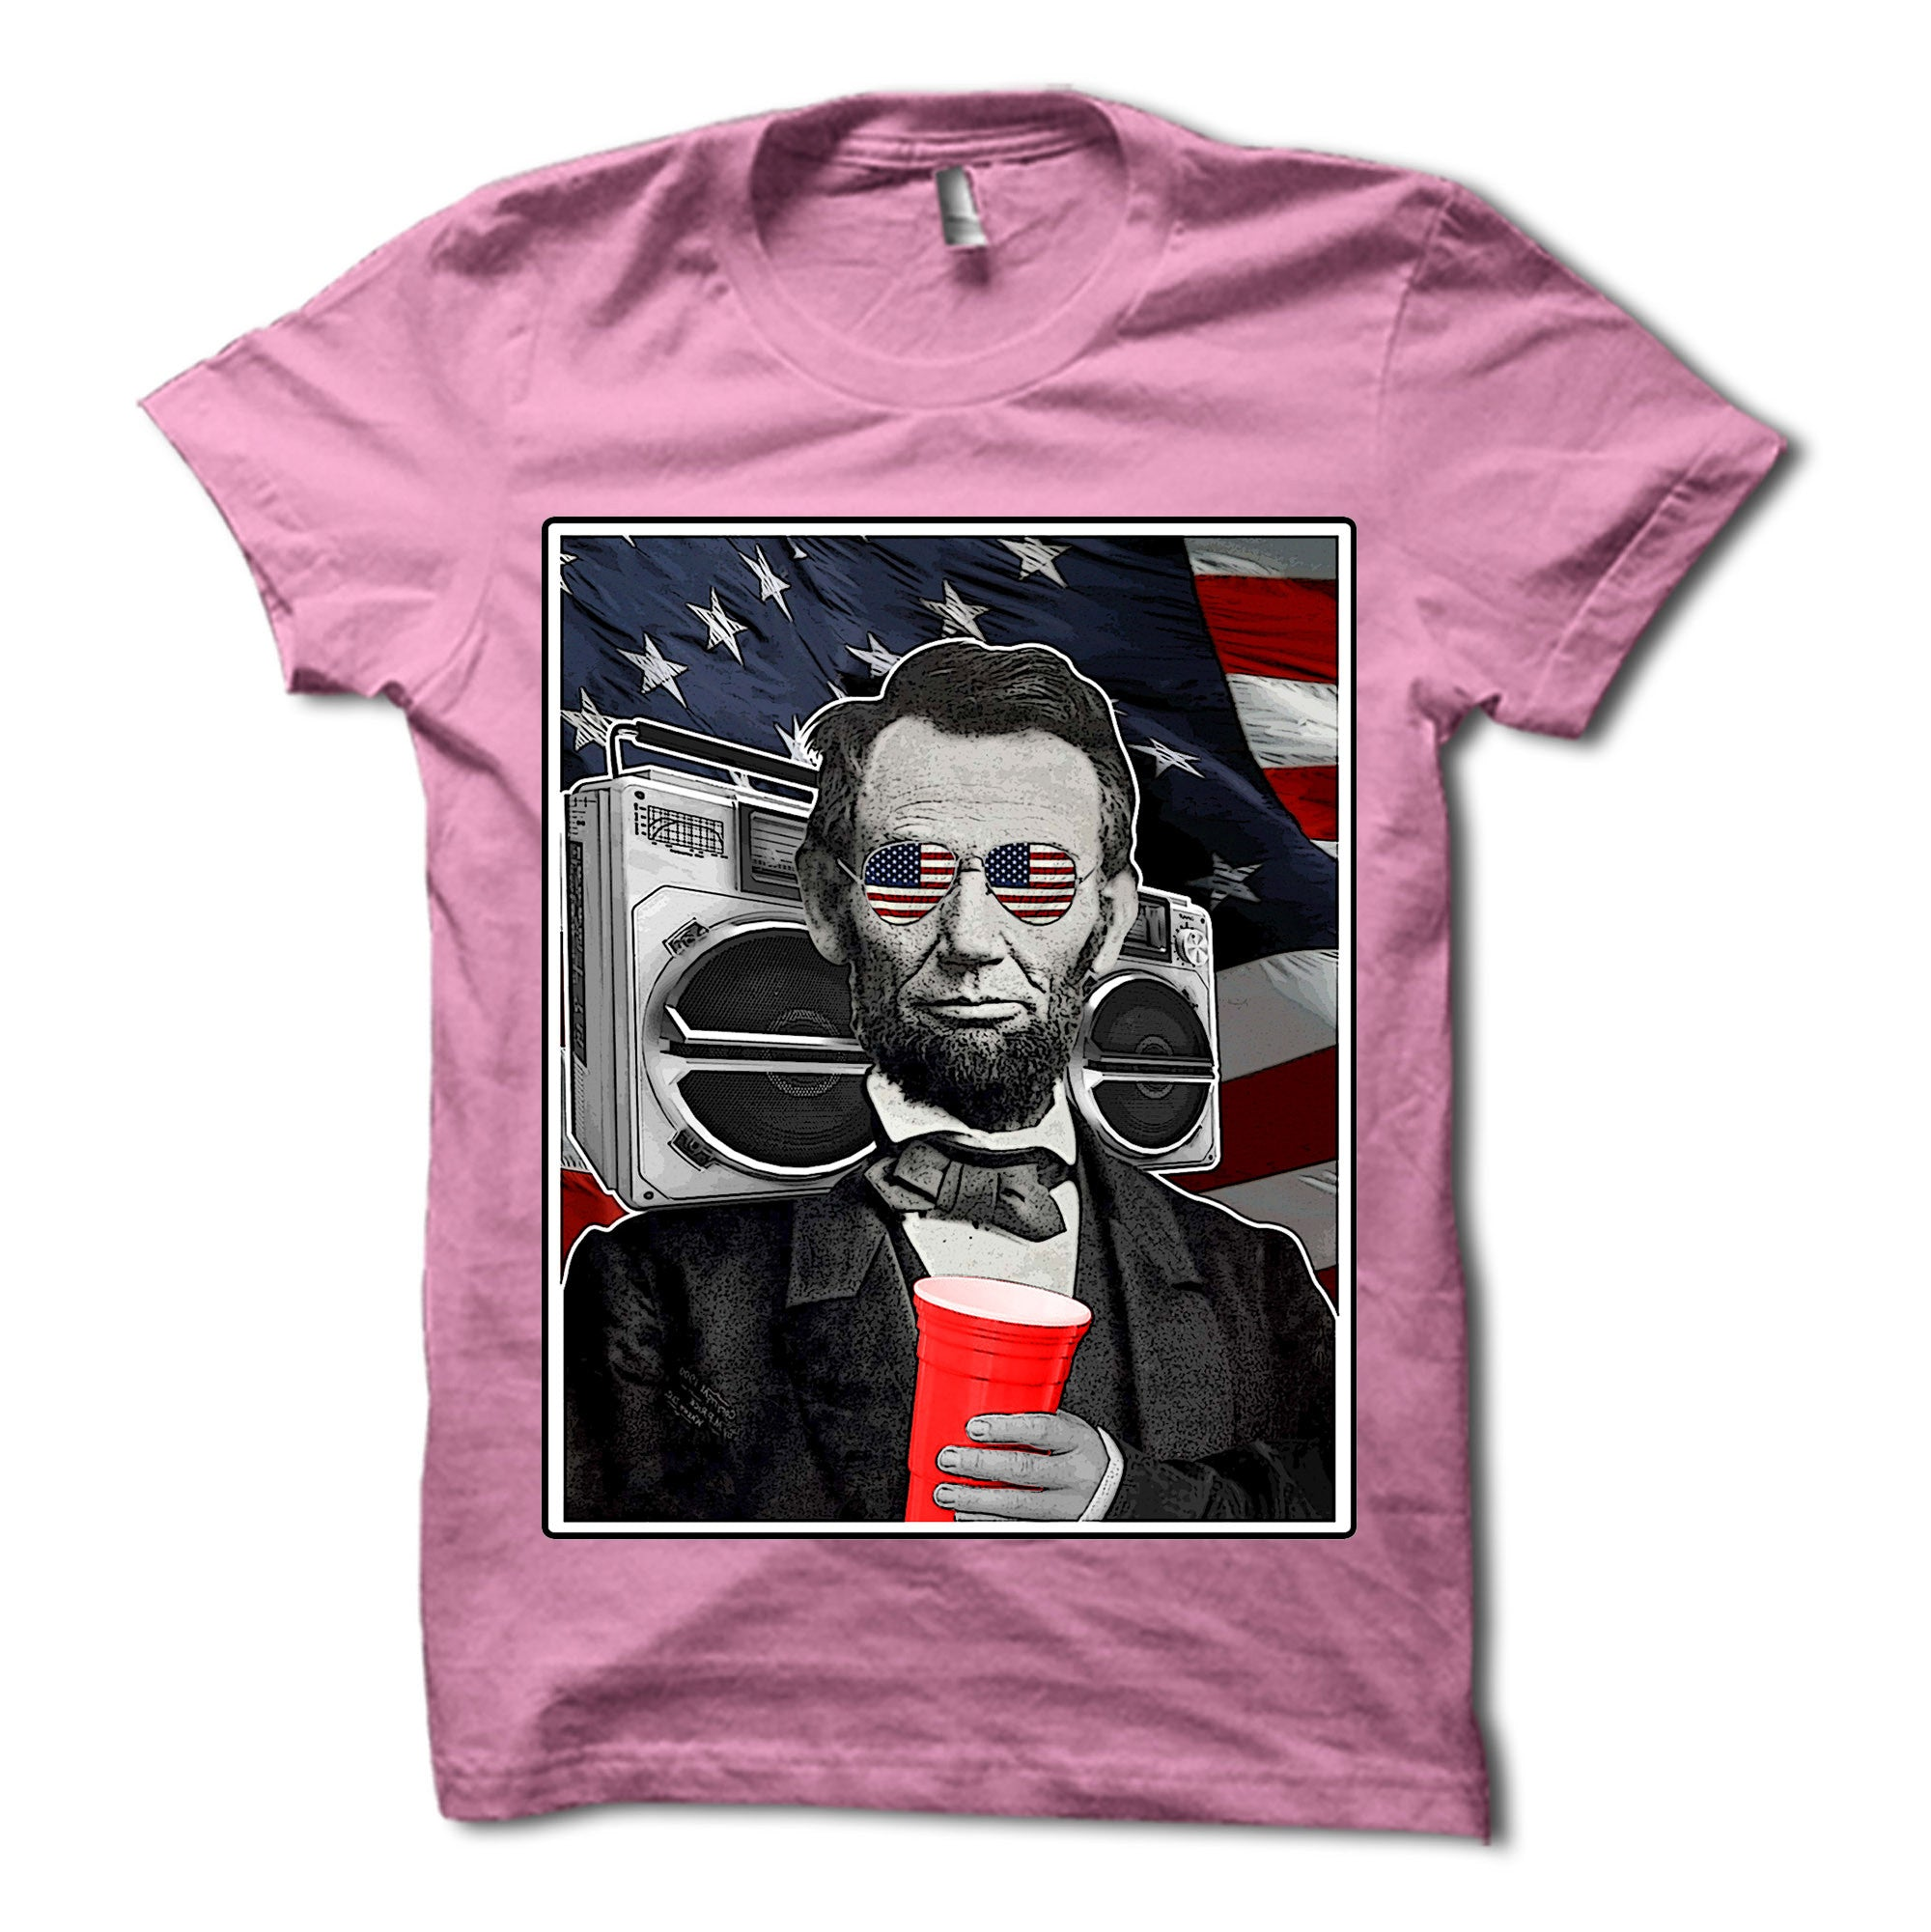 468b646f Abroham Lincoln Patriotic Party Shirt – Merica Supply Co.